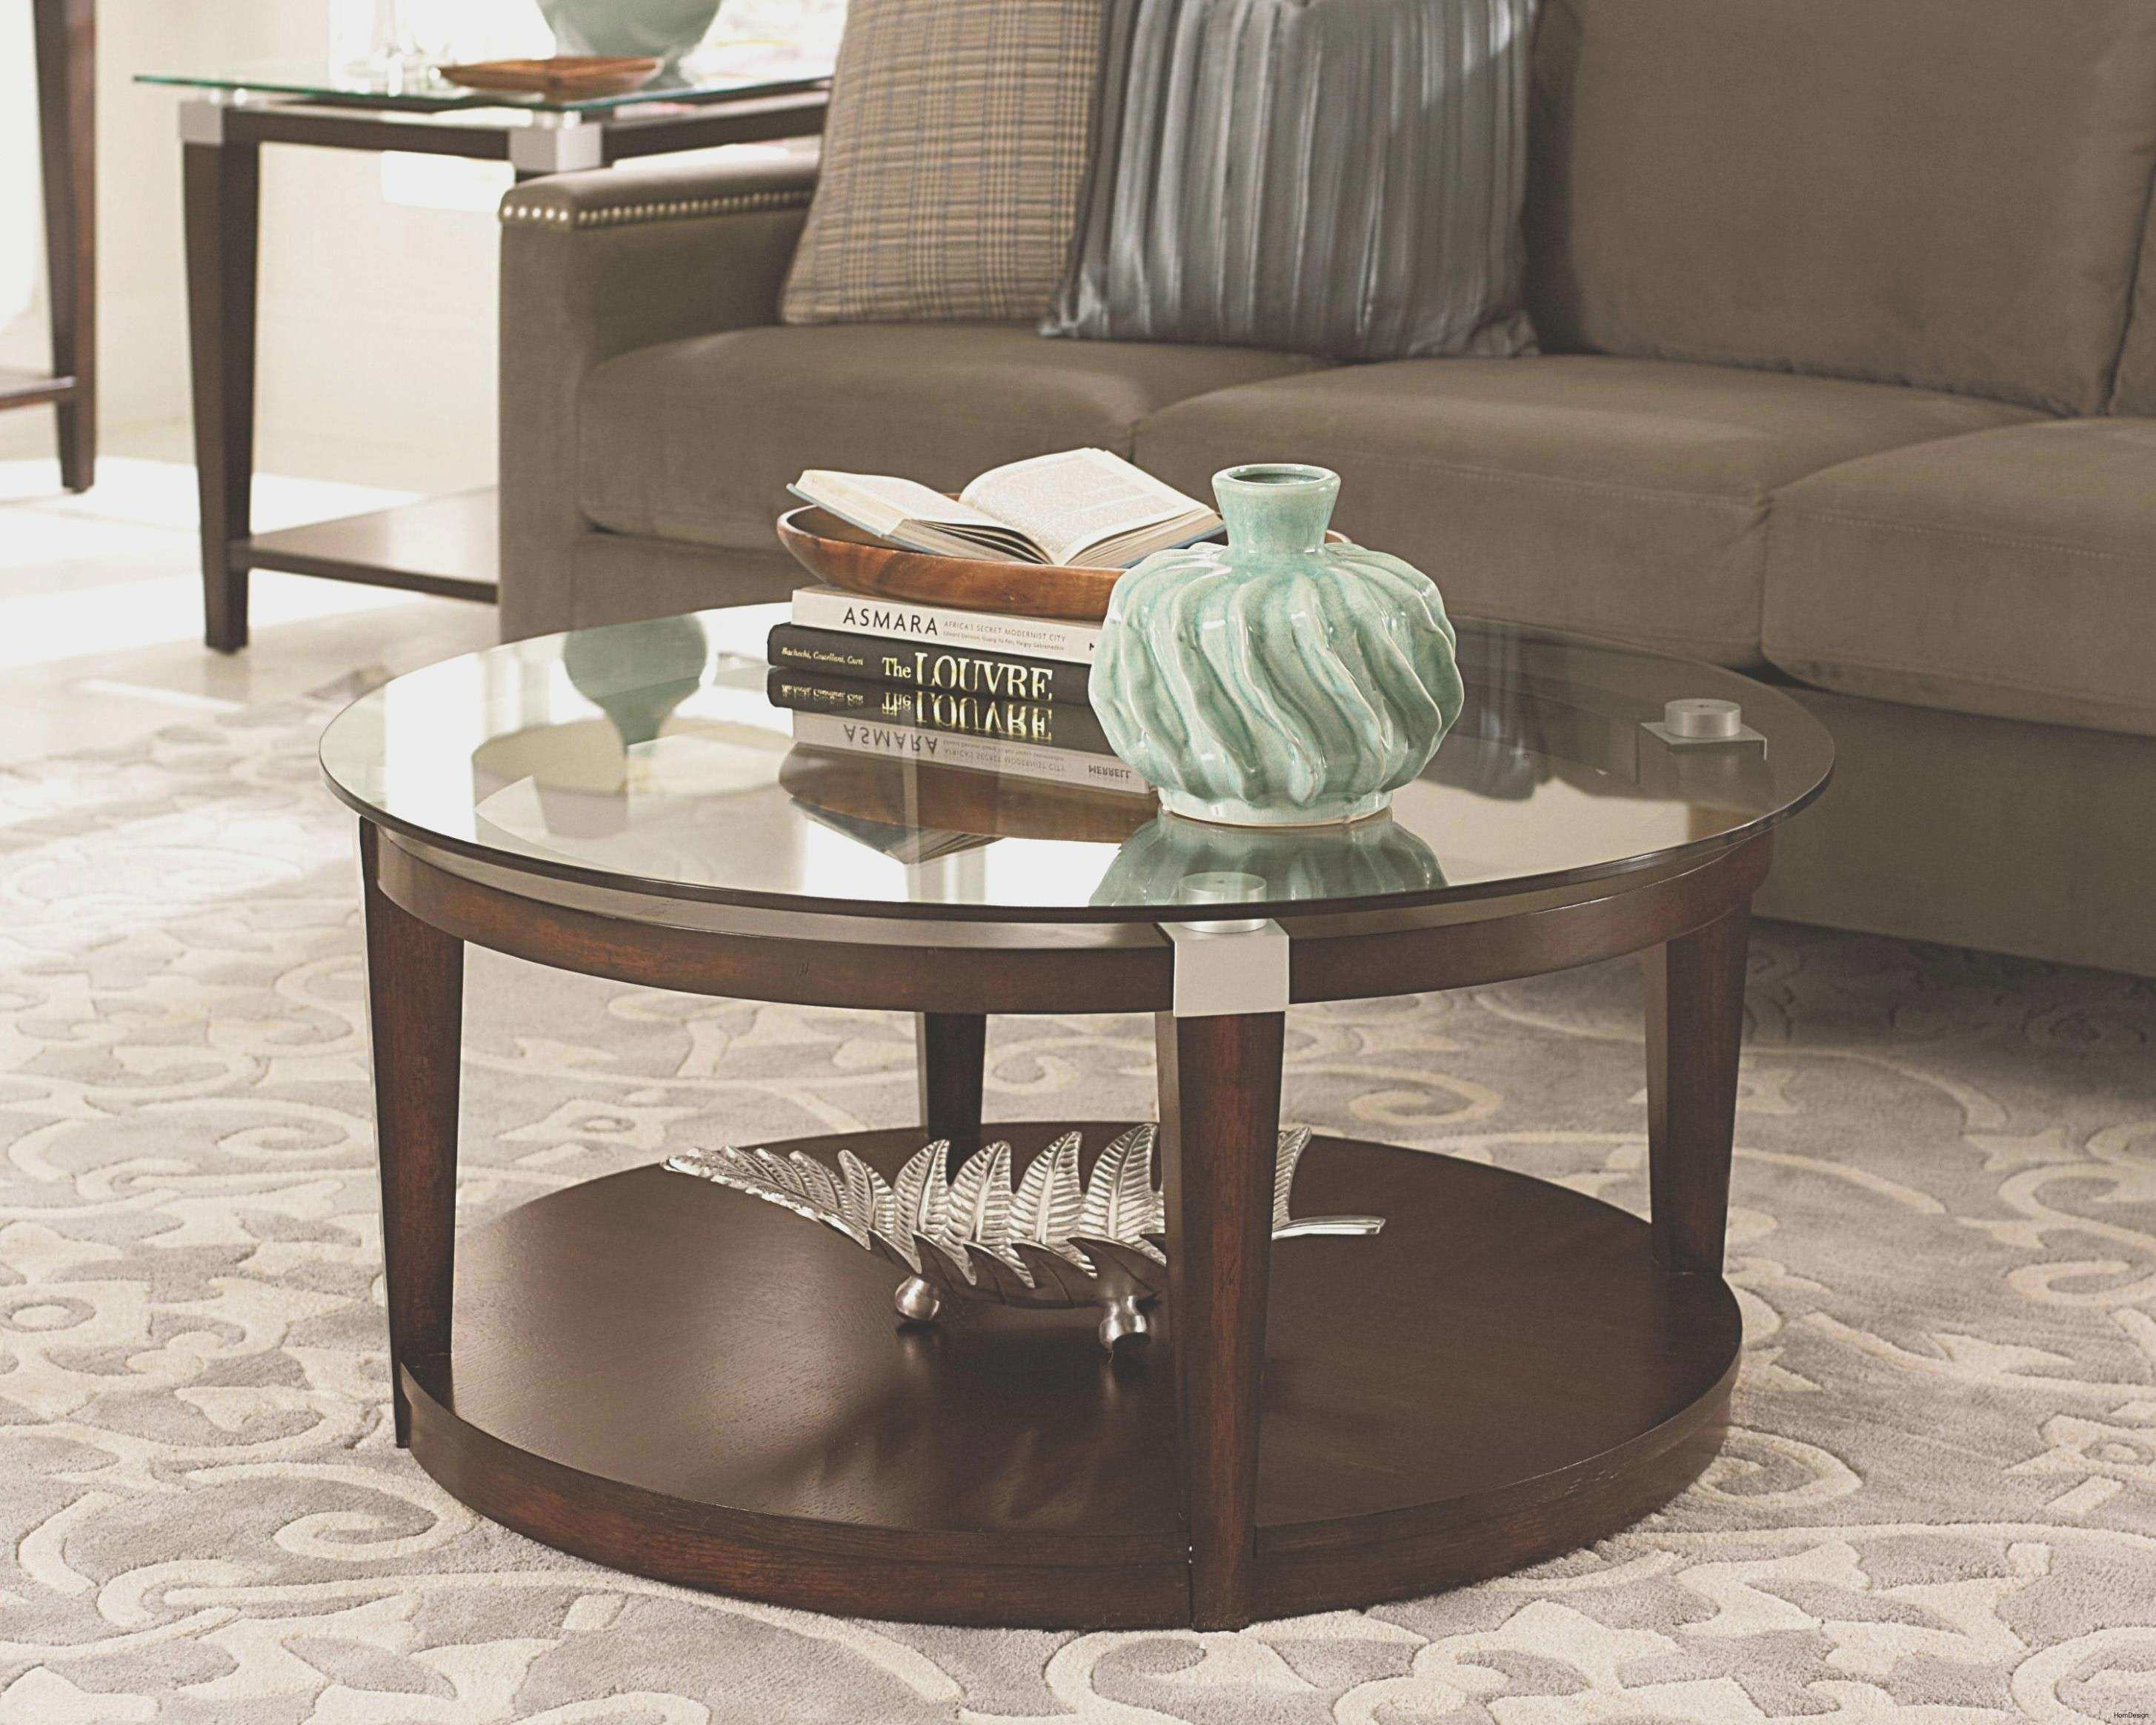 diy coffee table with glass top new elegant gallerie inspirational fresh accent decor ideas coastal bathroom accessories legged wicker outdoor furniture small space living large